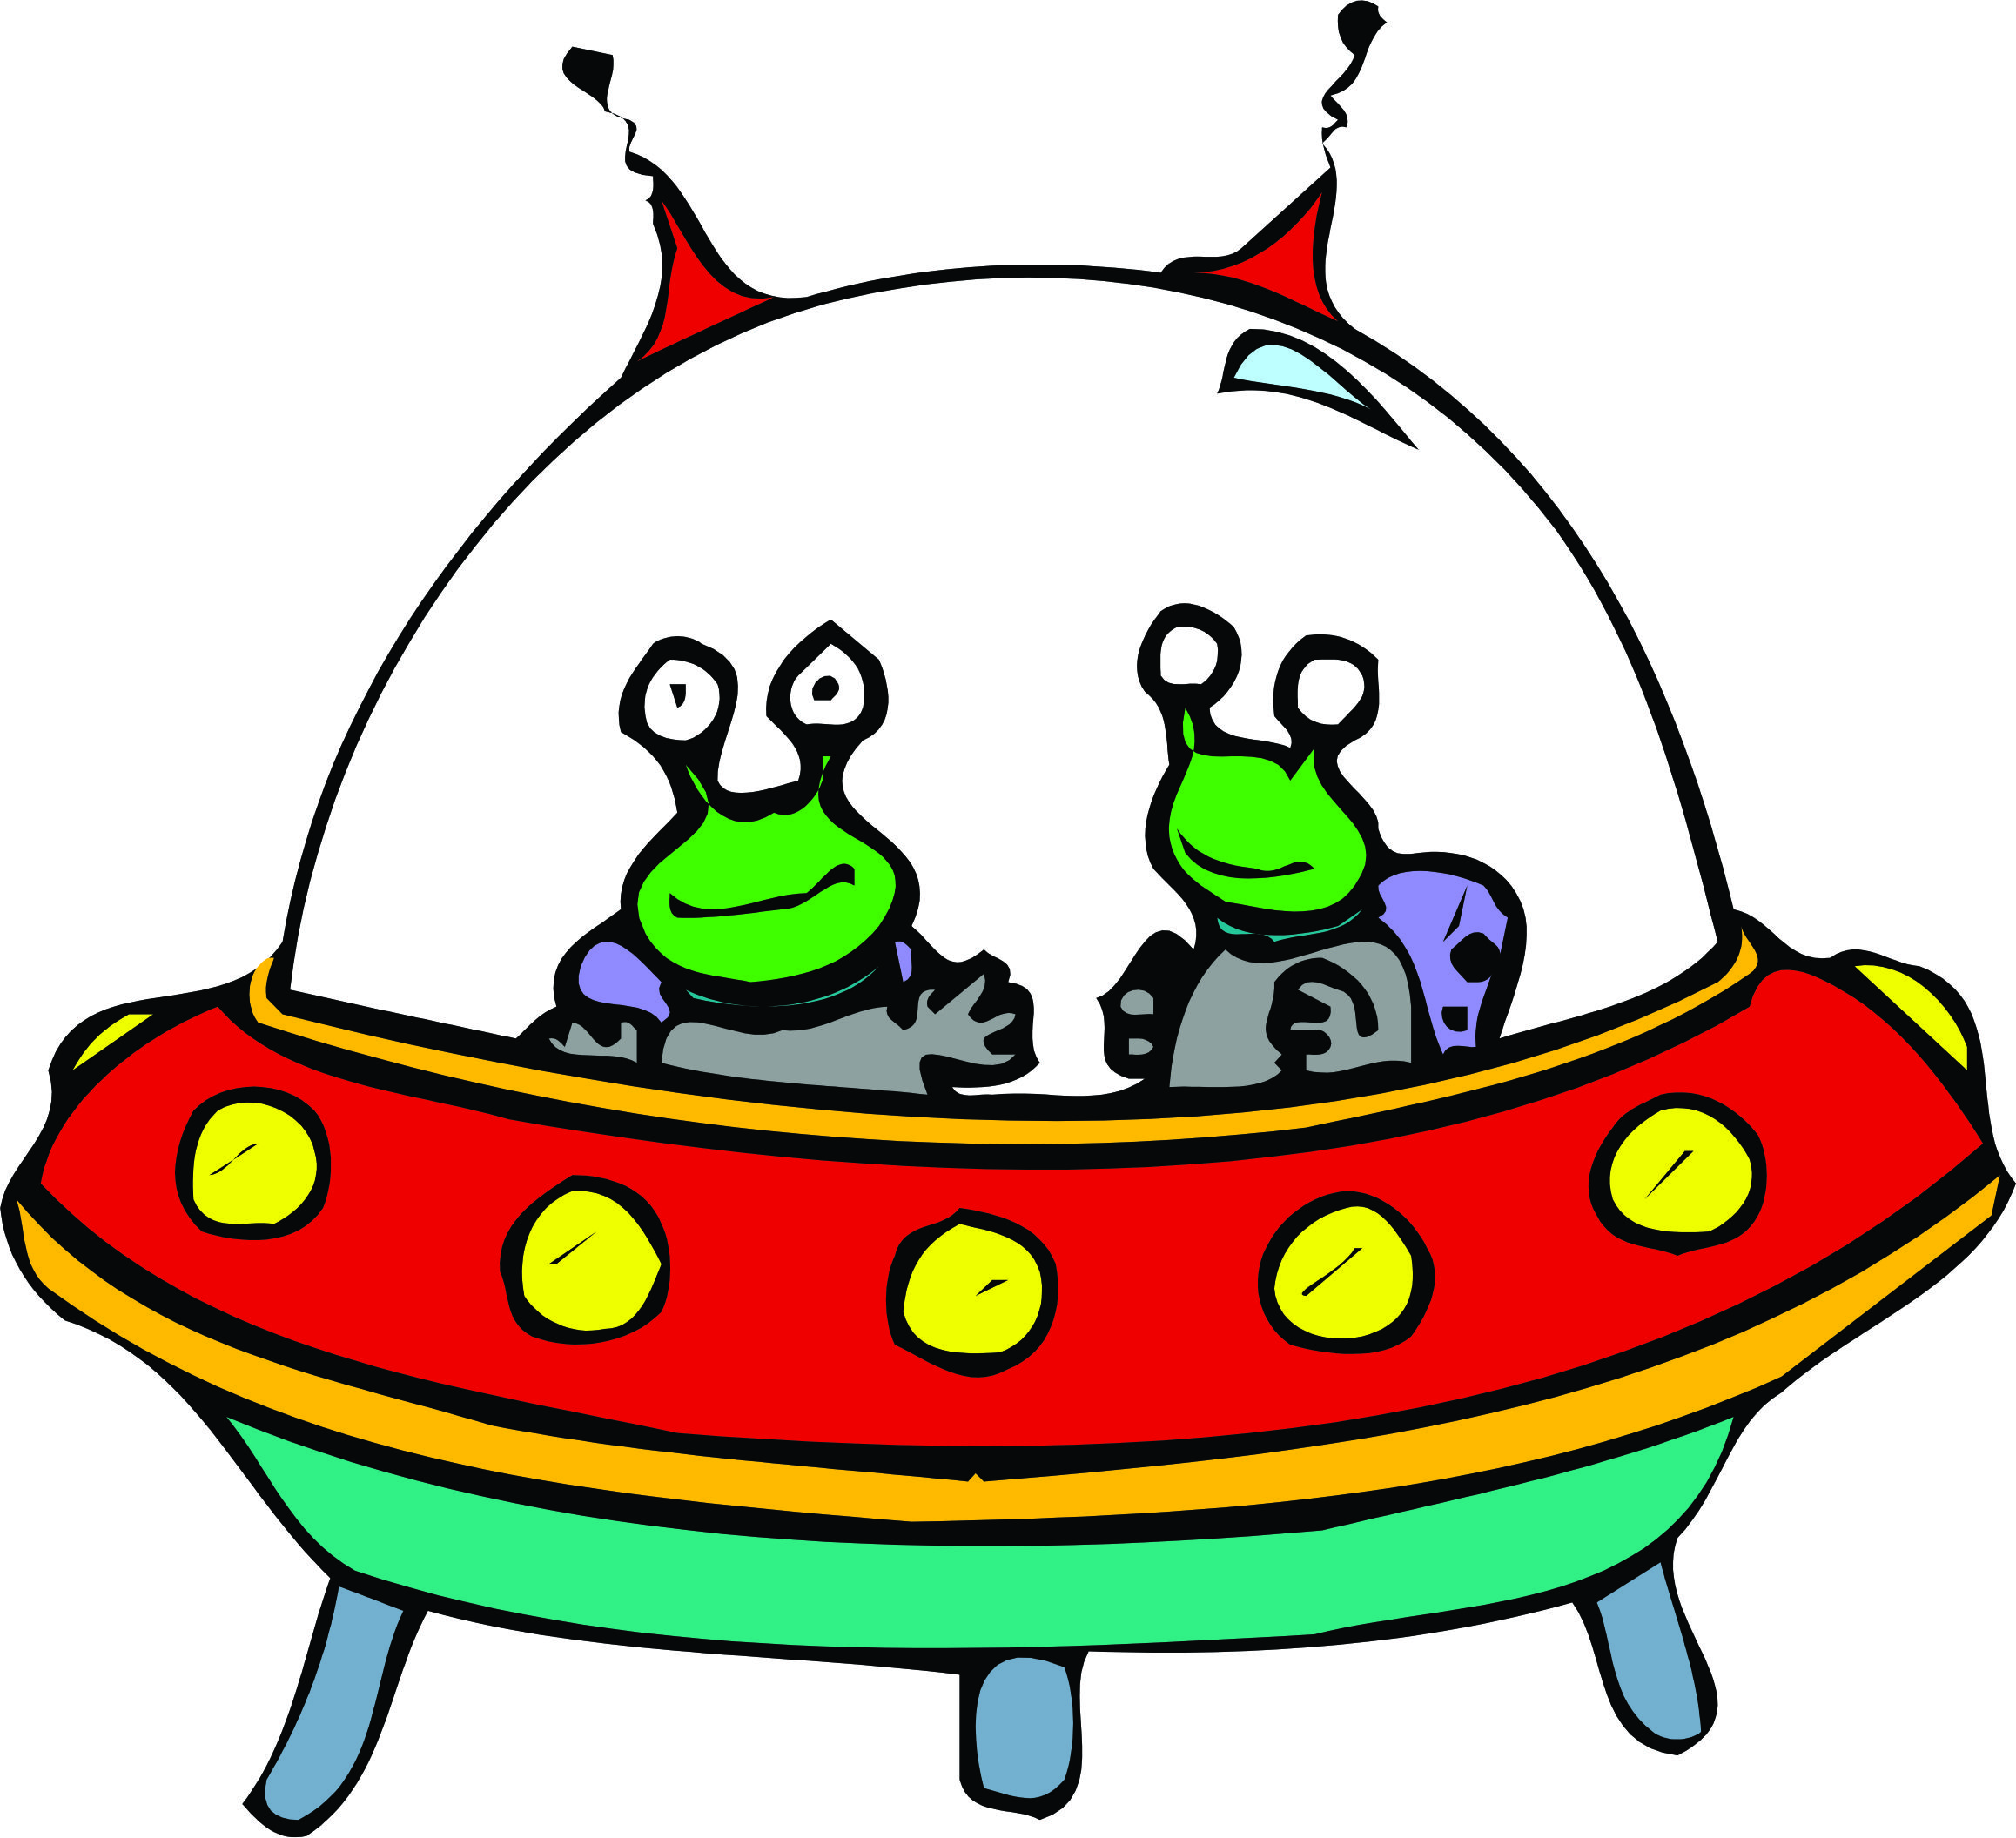 Spaceships clipart.